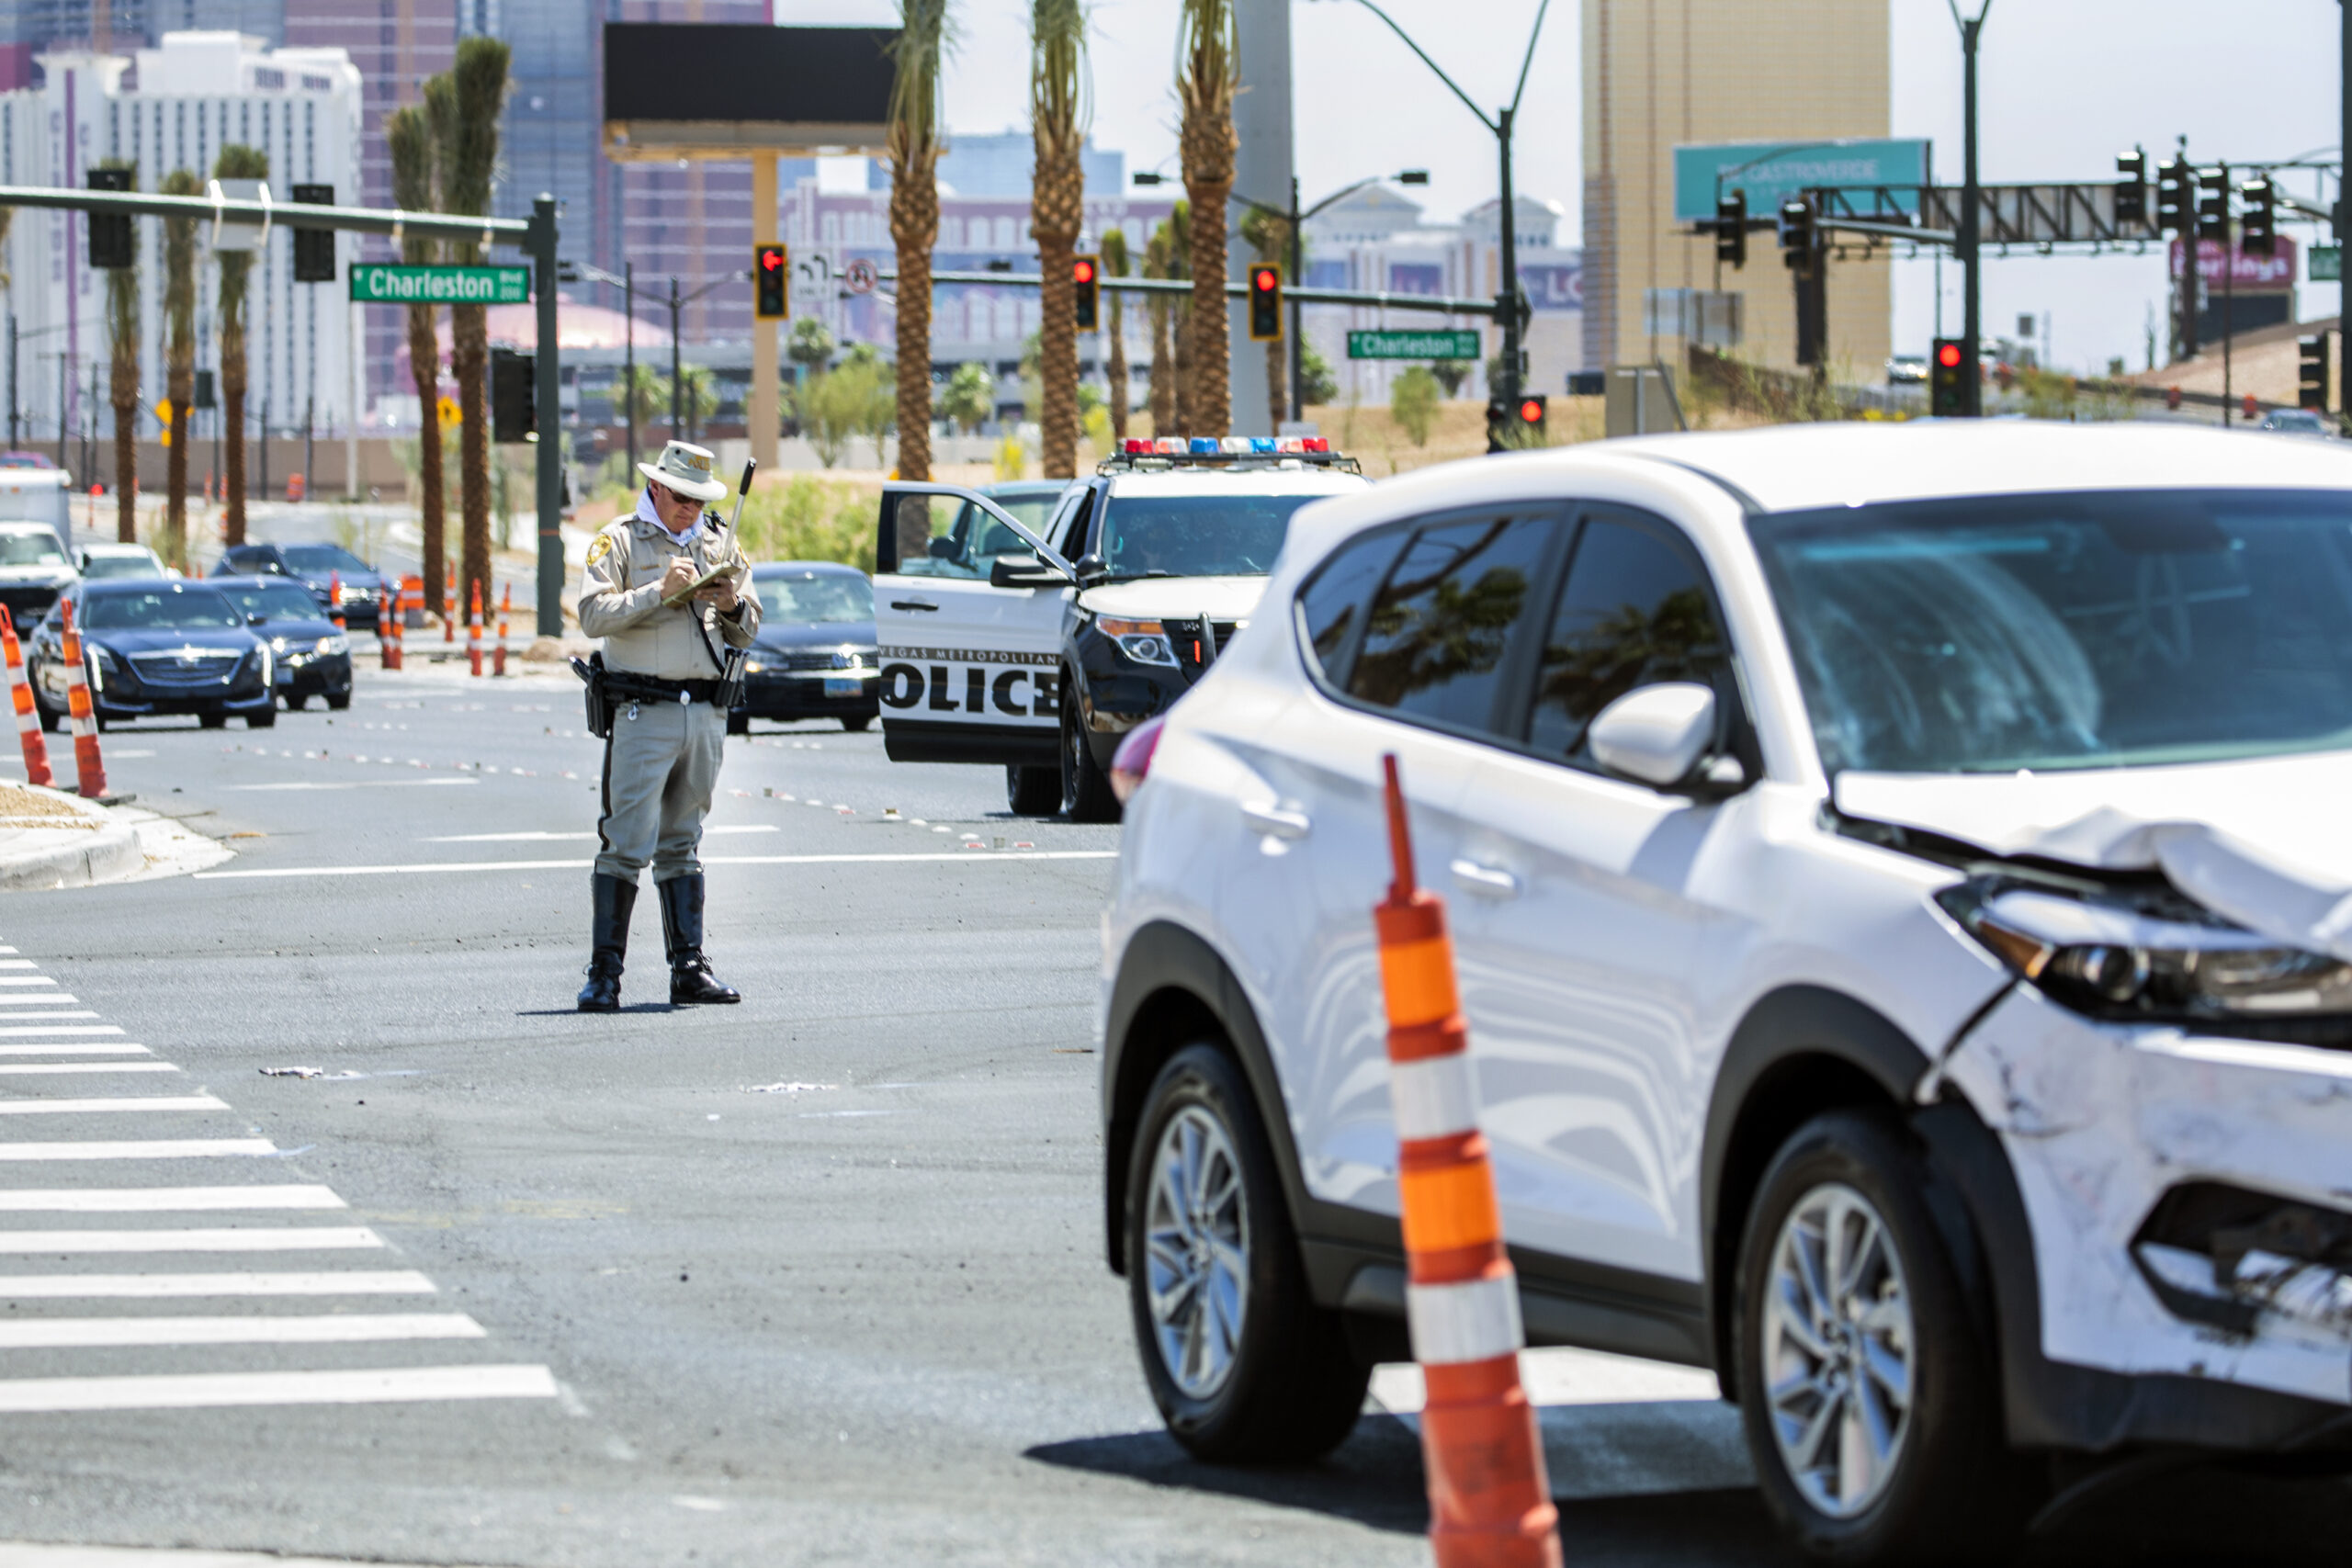 A police officer stands at the scene of a traffic accident.